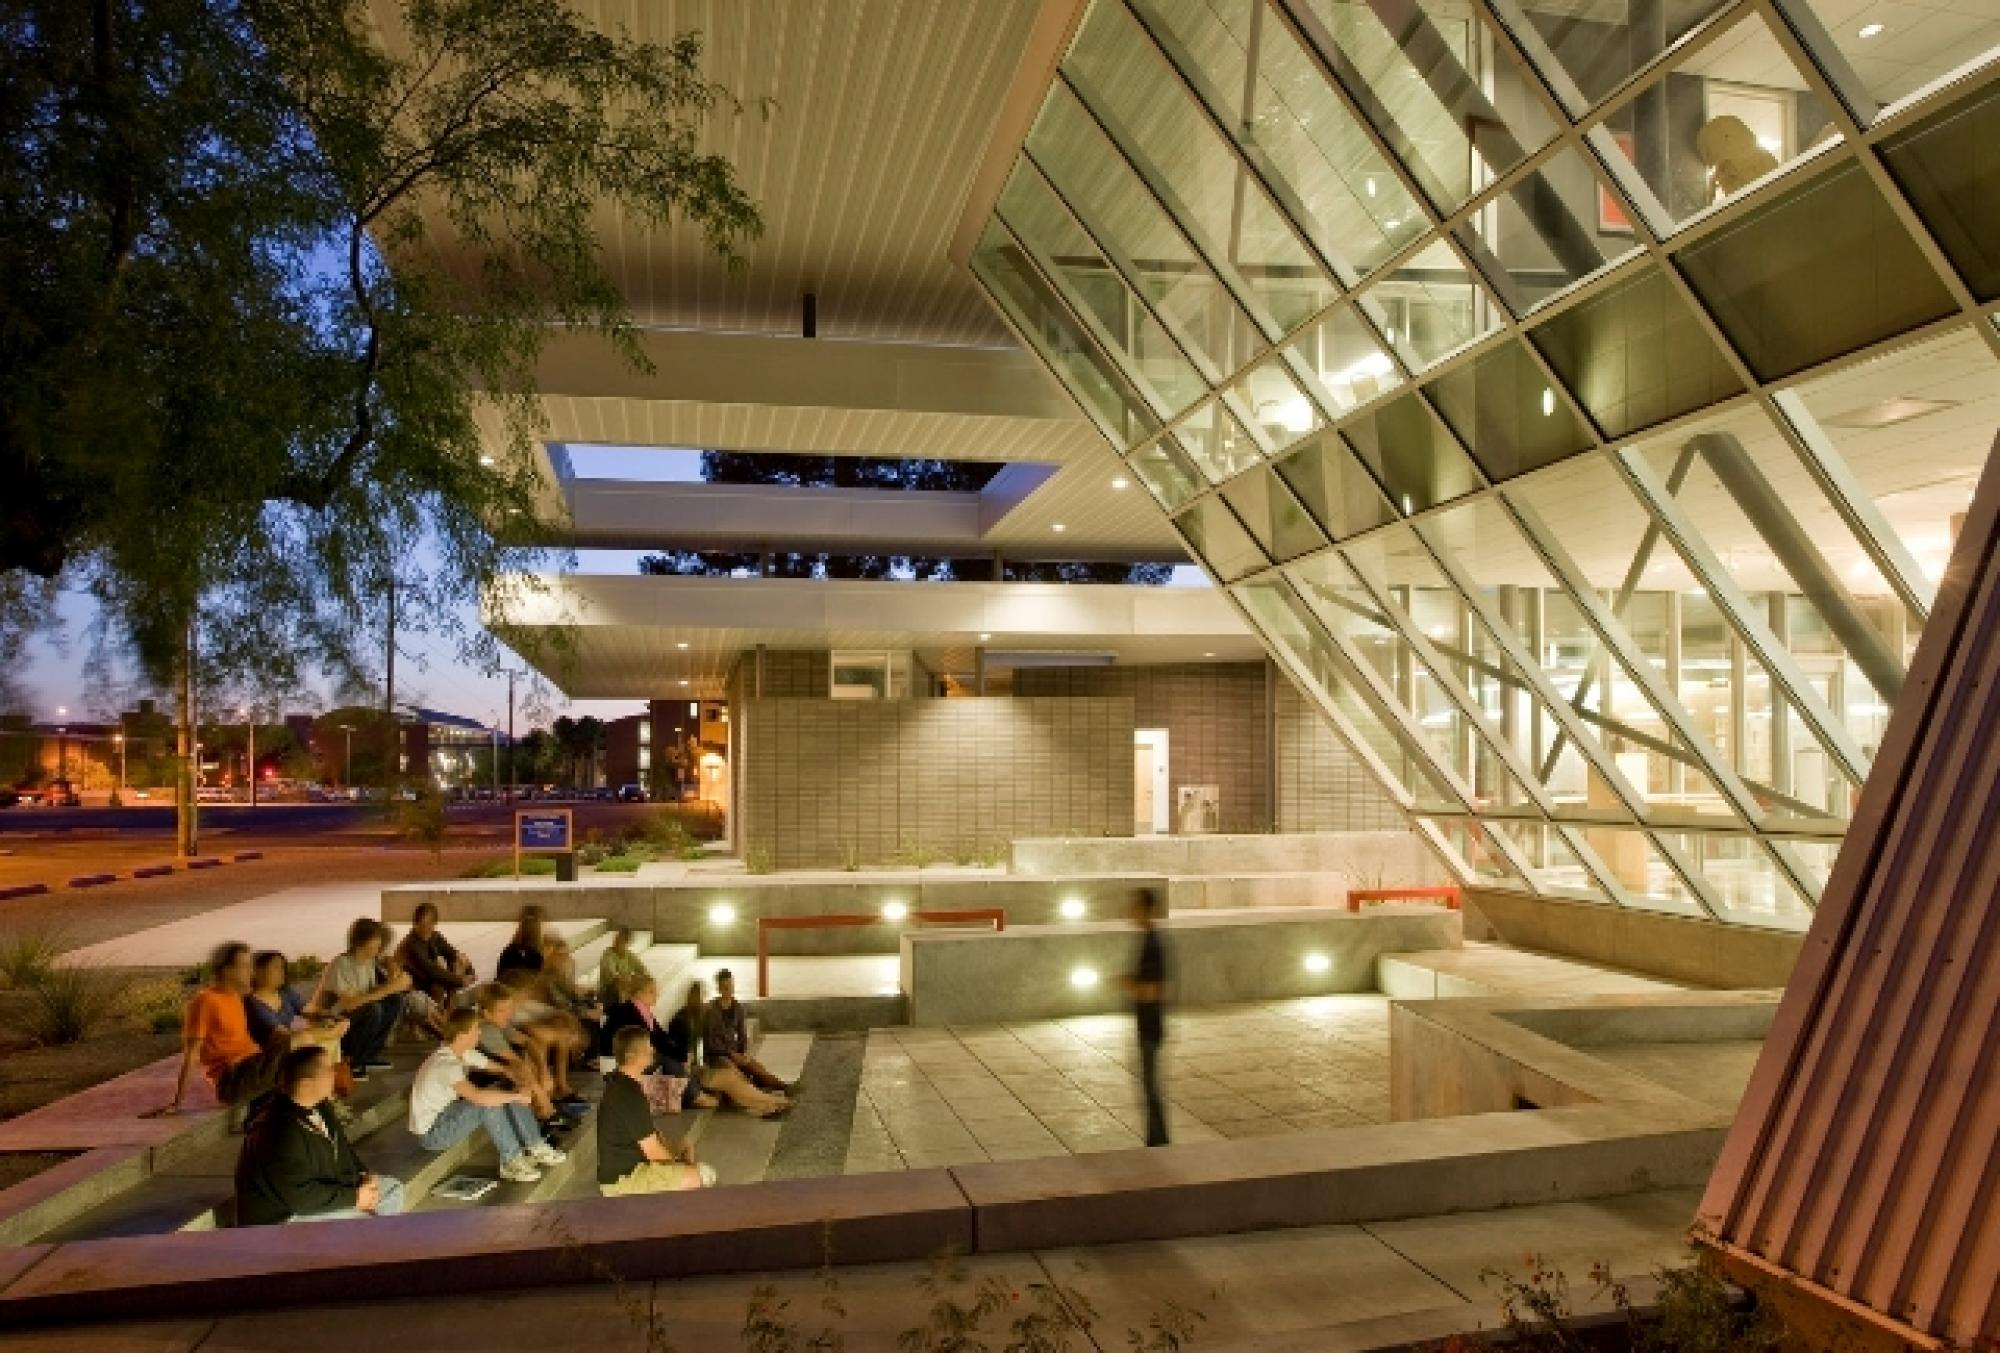 The building has both indoor and outdoor seating areas, such as the Hillman Odeum.